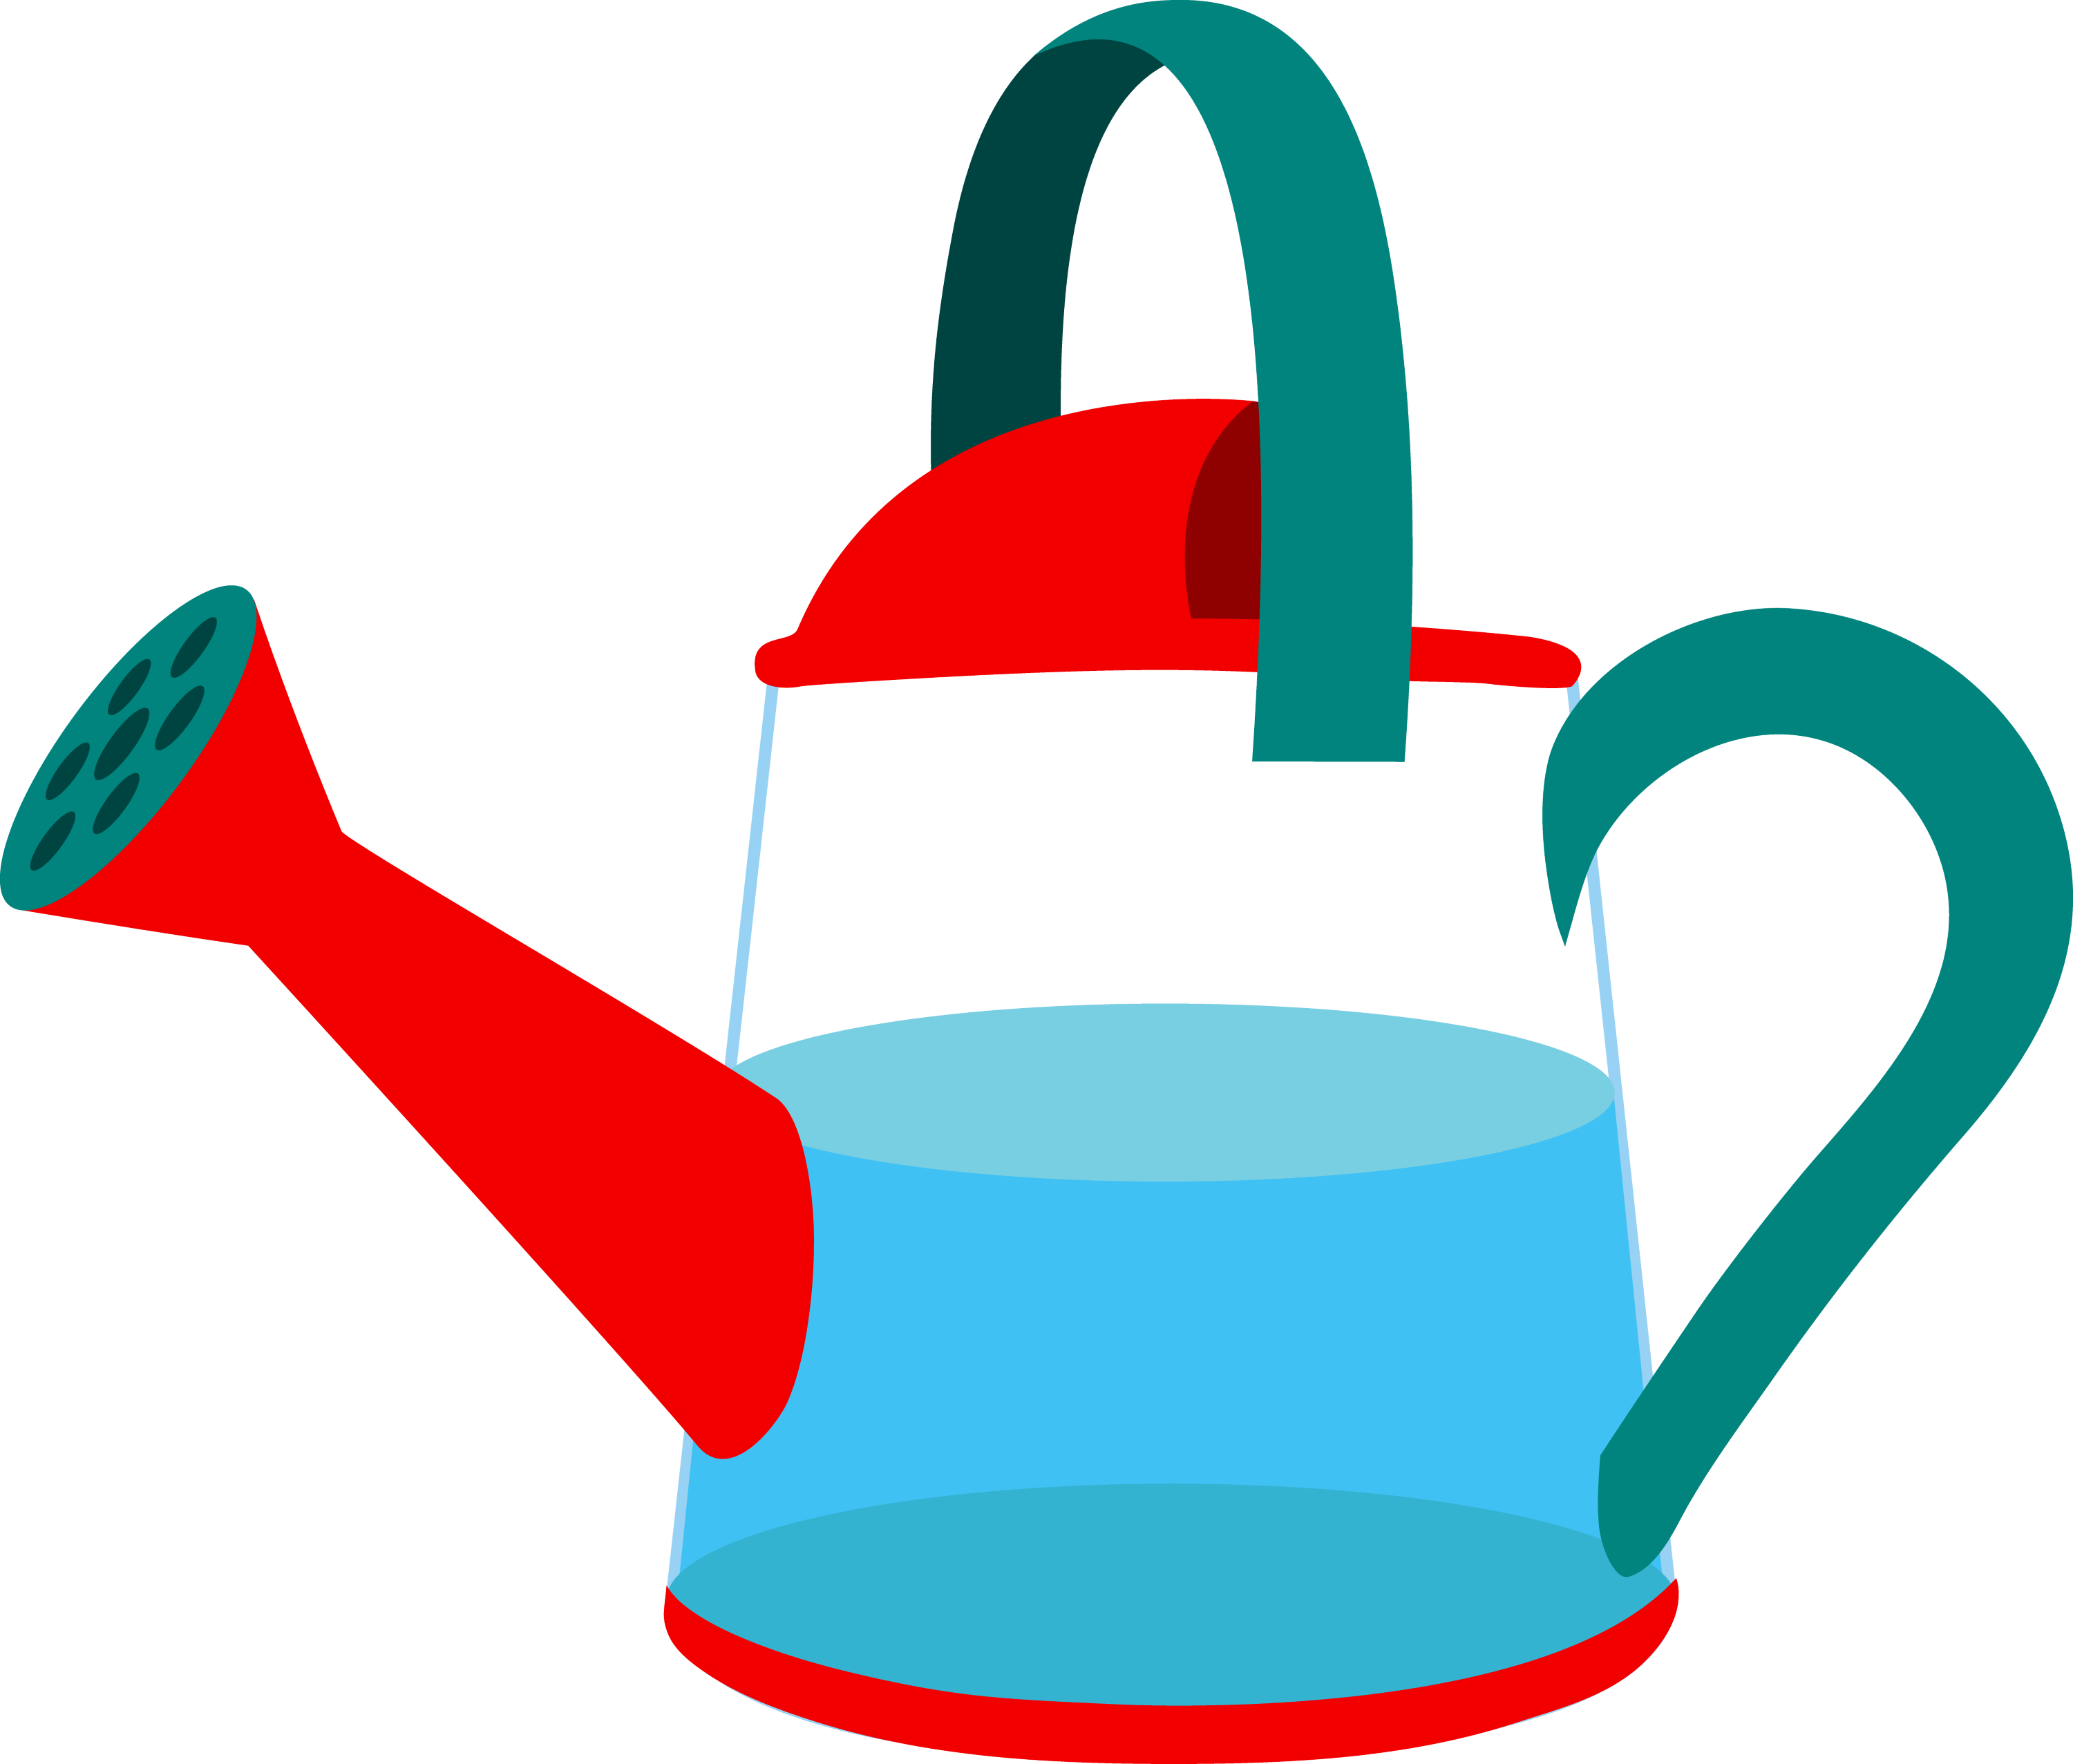 garden watering can half full transparent